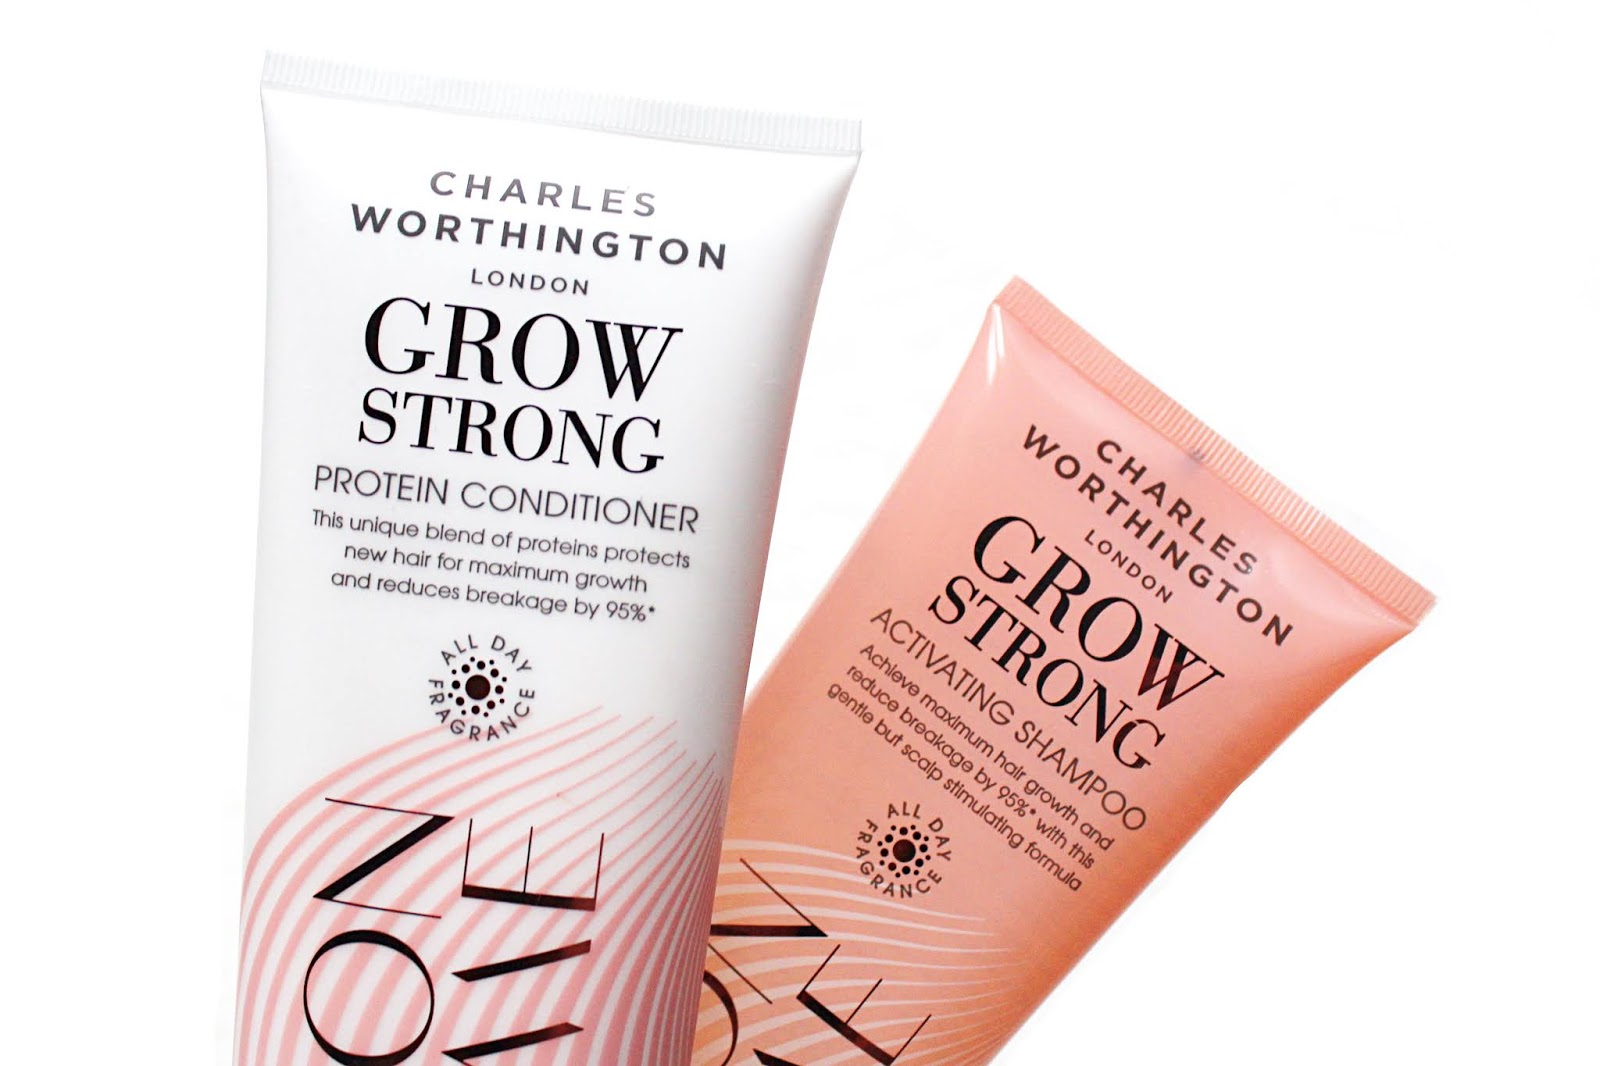 Charles Worthington Grow Strong Shampoo & Conditioner Review